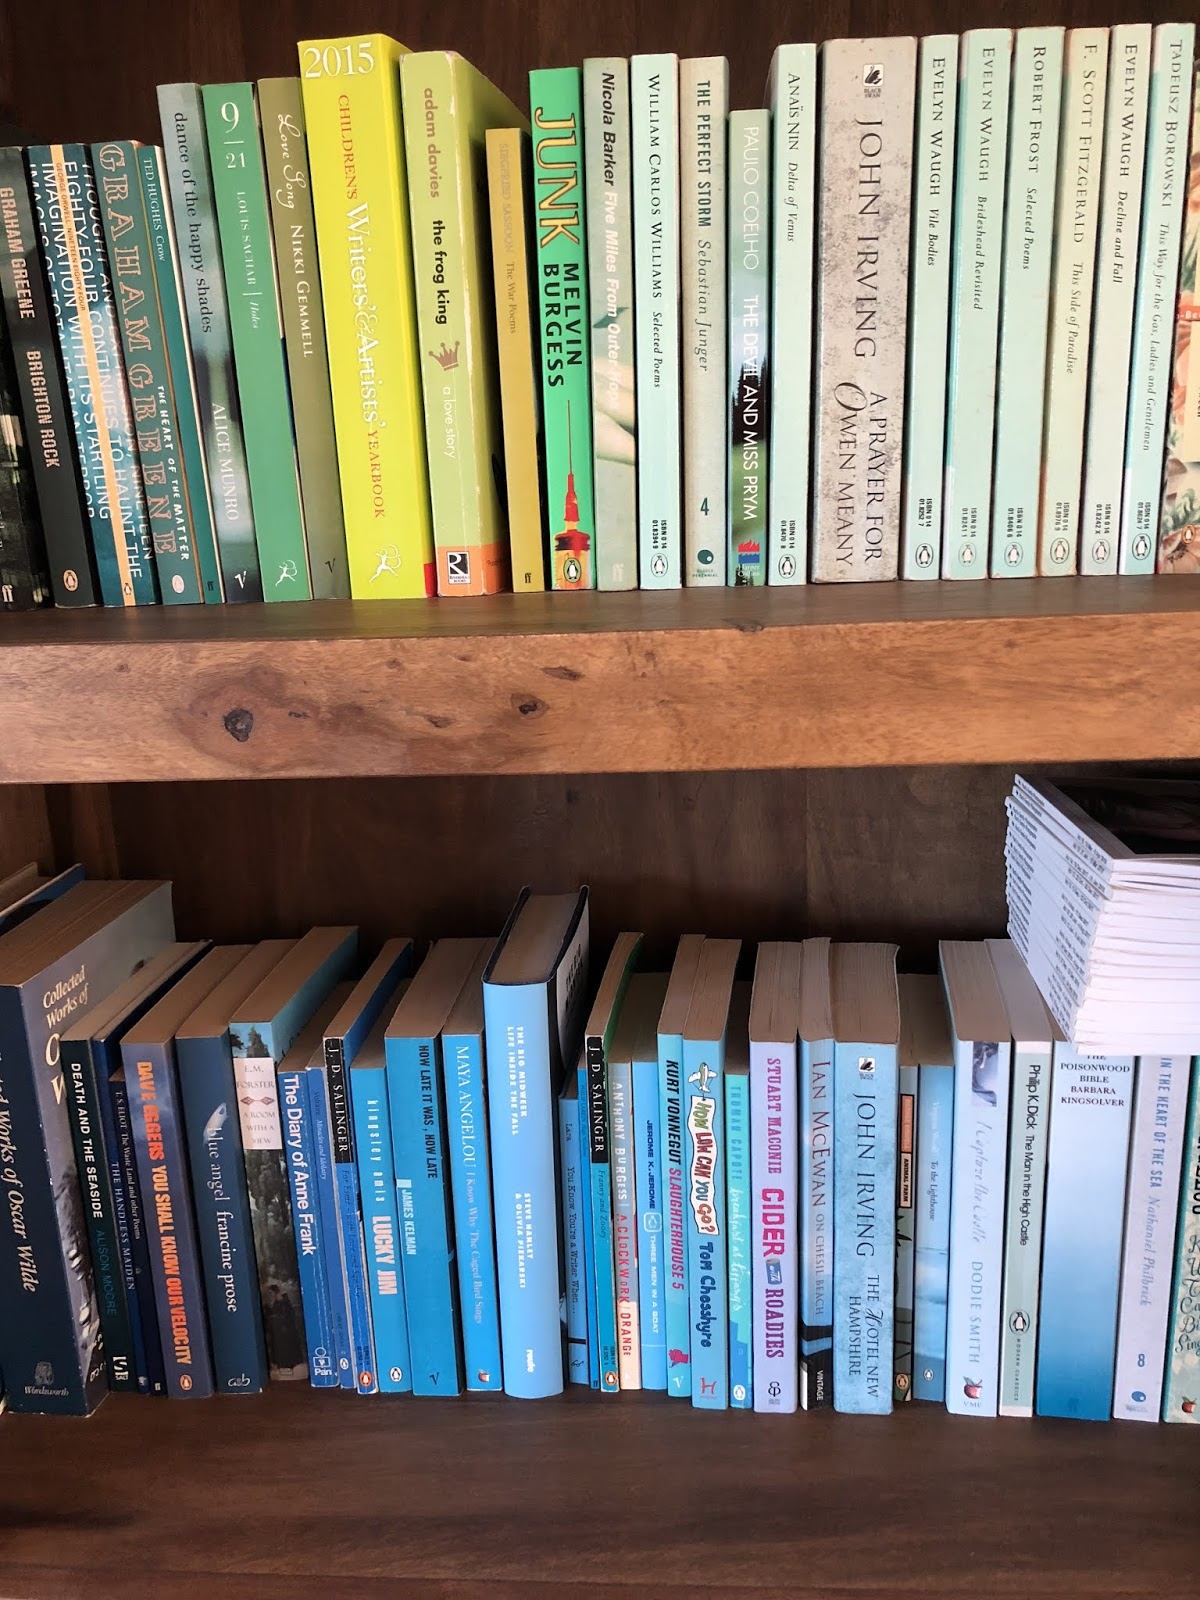 show cupboards burials n audiobook by dragon the s tooth book d wilson cupboard ashtown